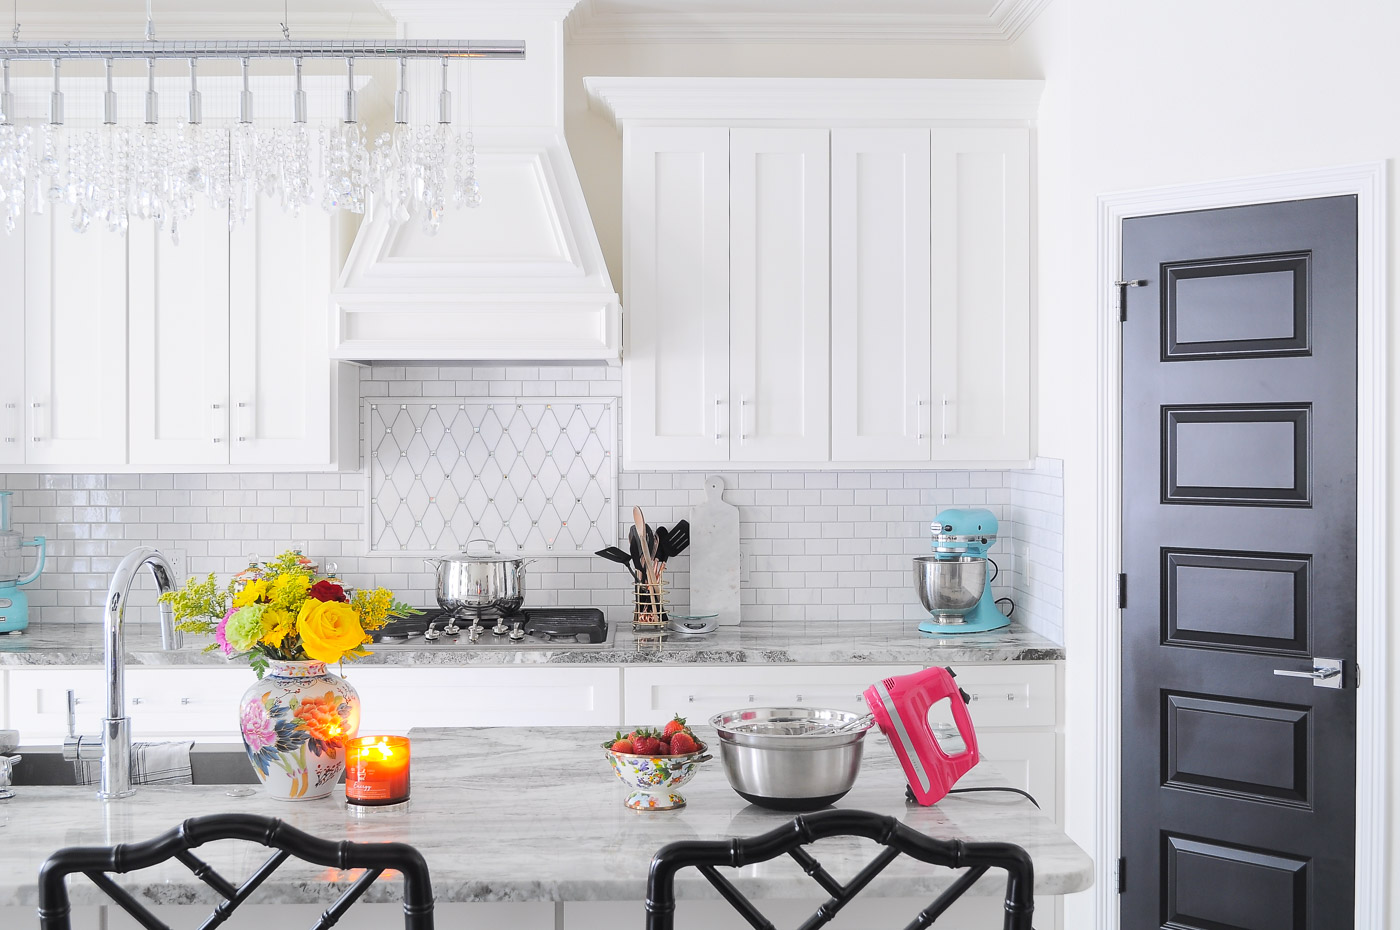 Bright white kitchen with crystal chandeliers and shaker cabinets. Love the pops of color!